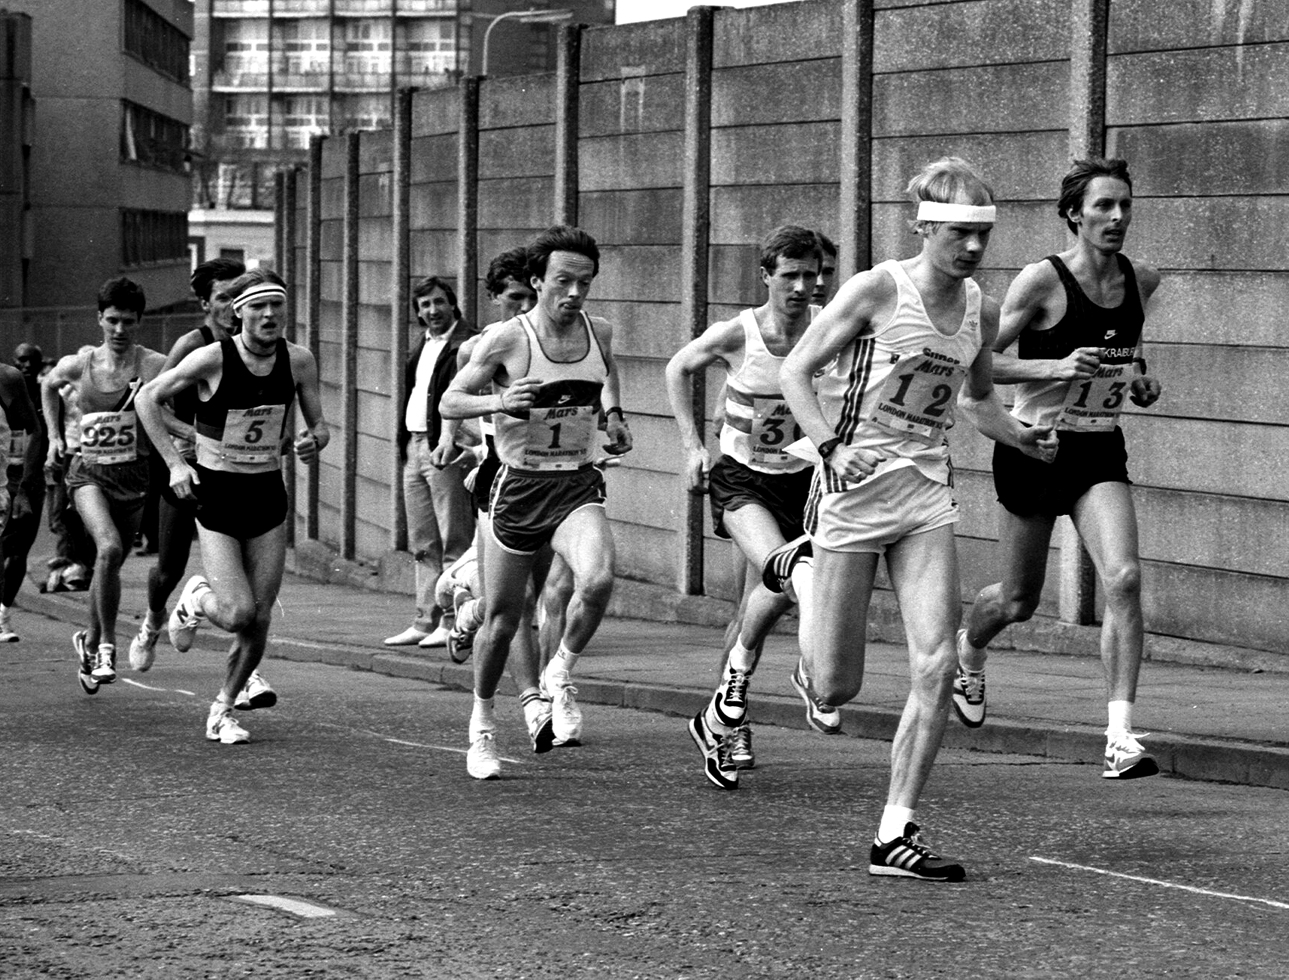 A Hutton, London Marathon (3rd), 1985